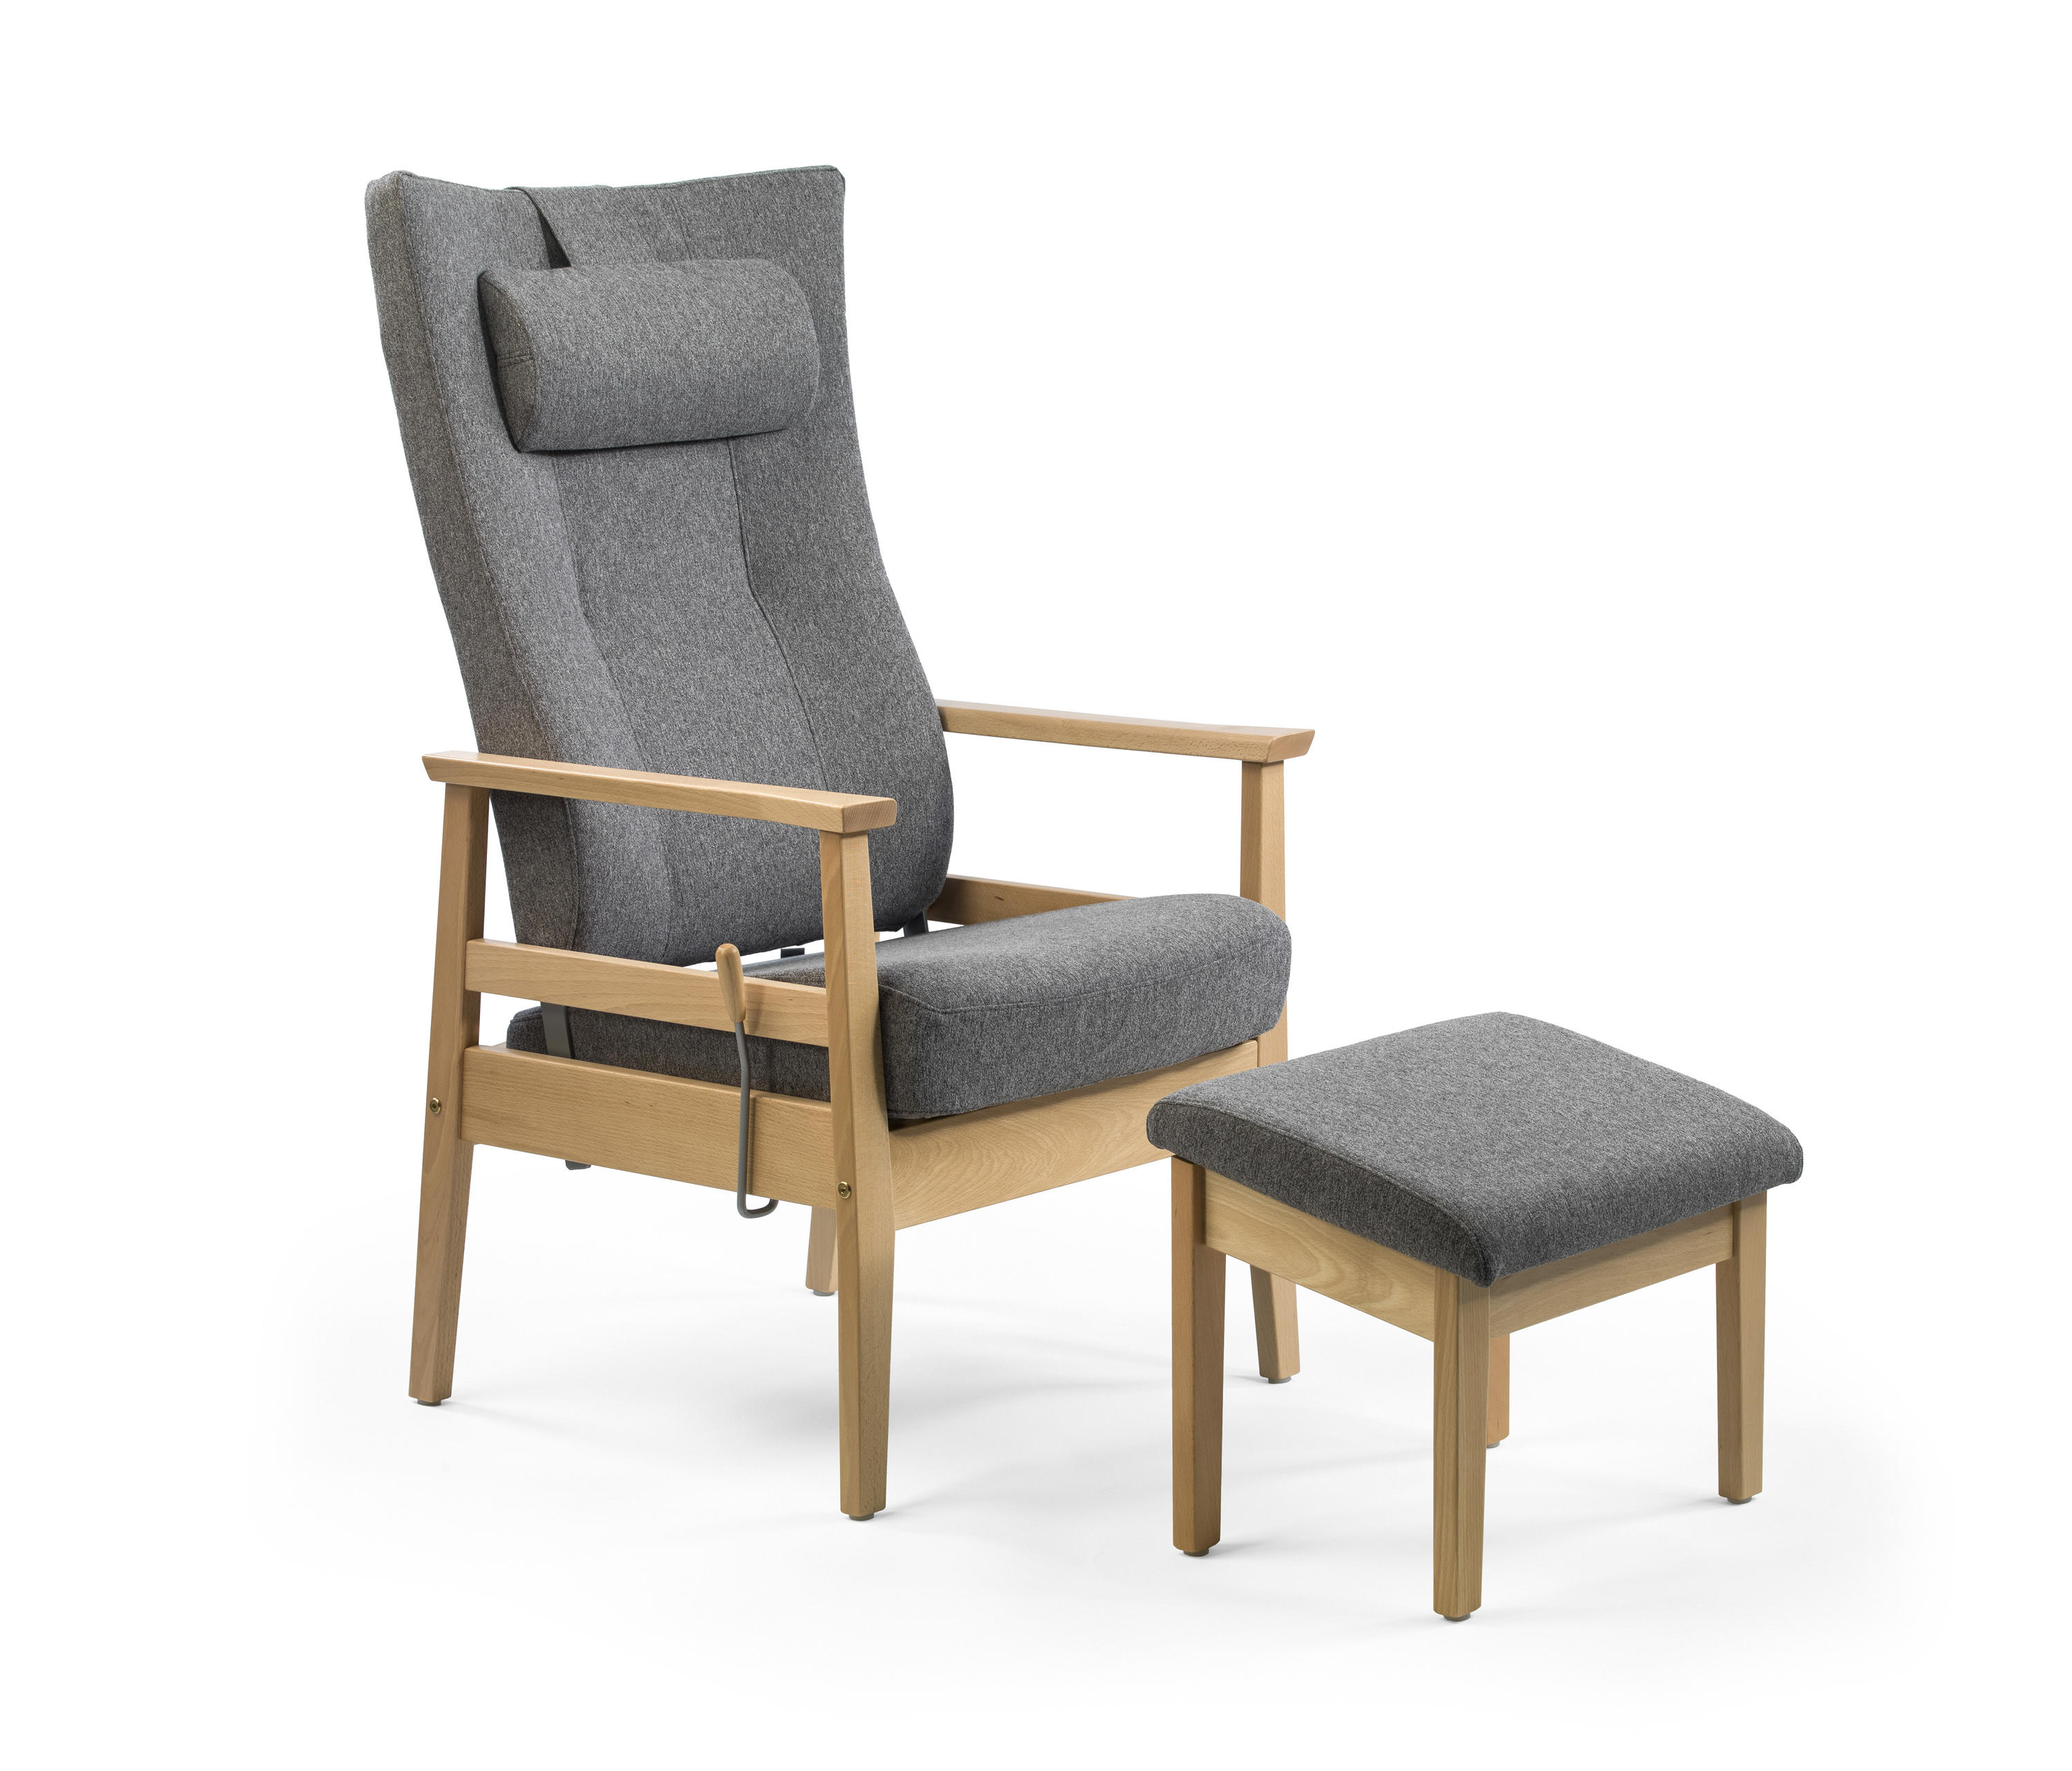 Brilliant and also Lovely armchairs for elderly for Invigorate